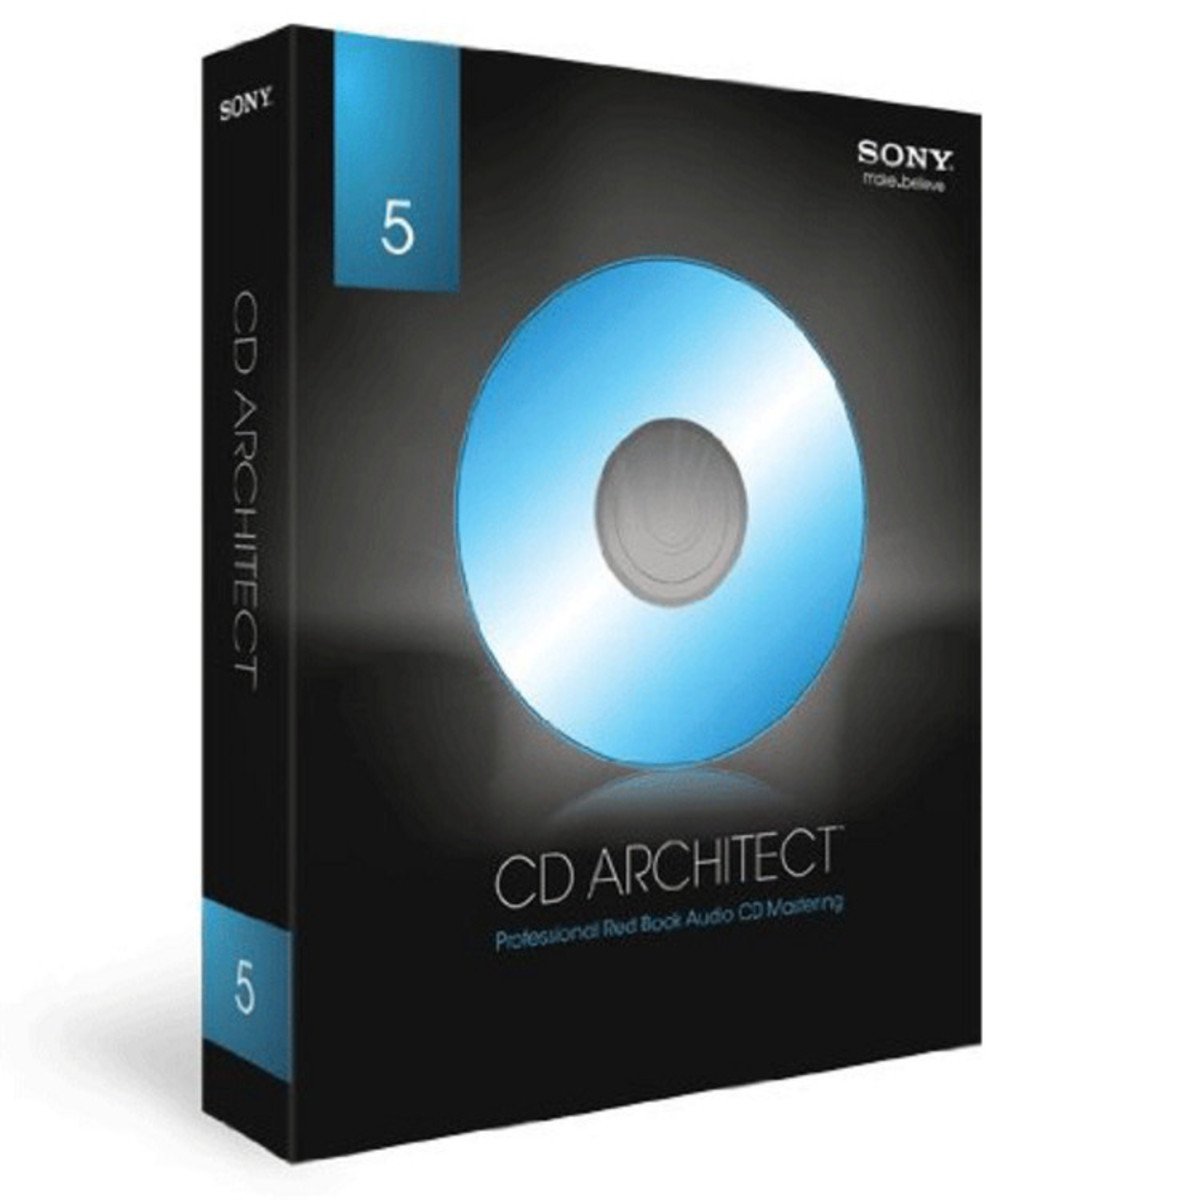 Disc Sony Cd Architect 52 Mastering Software At Gear4music Hi Fi Compressor With Pre Emphasis